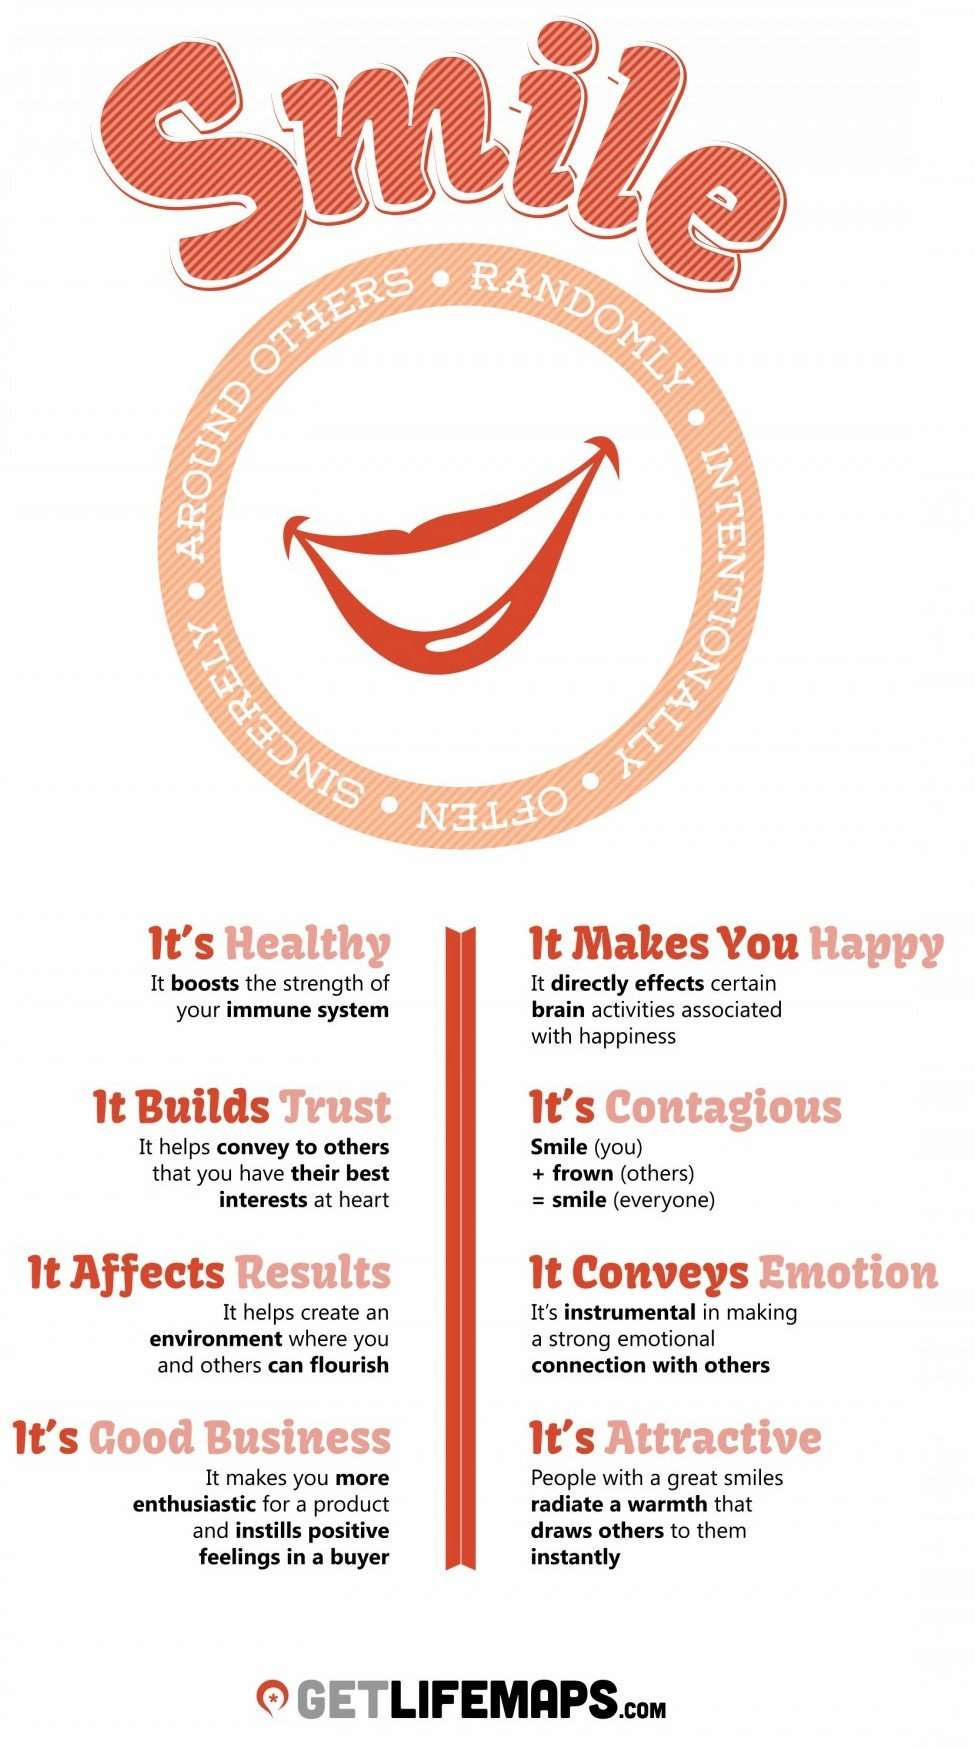 World Smile Day 8 reasons